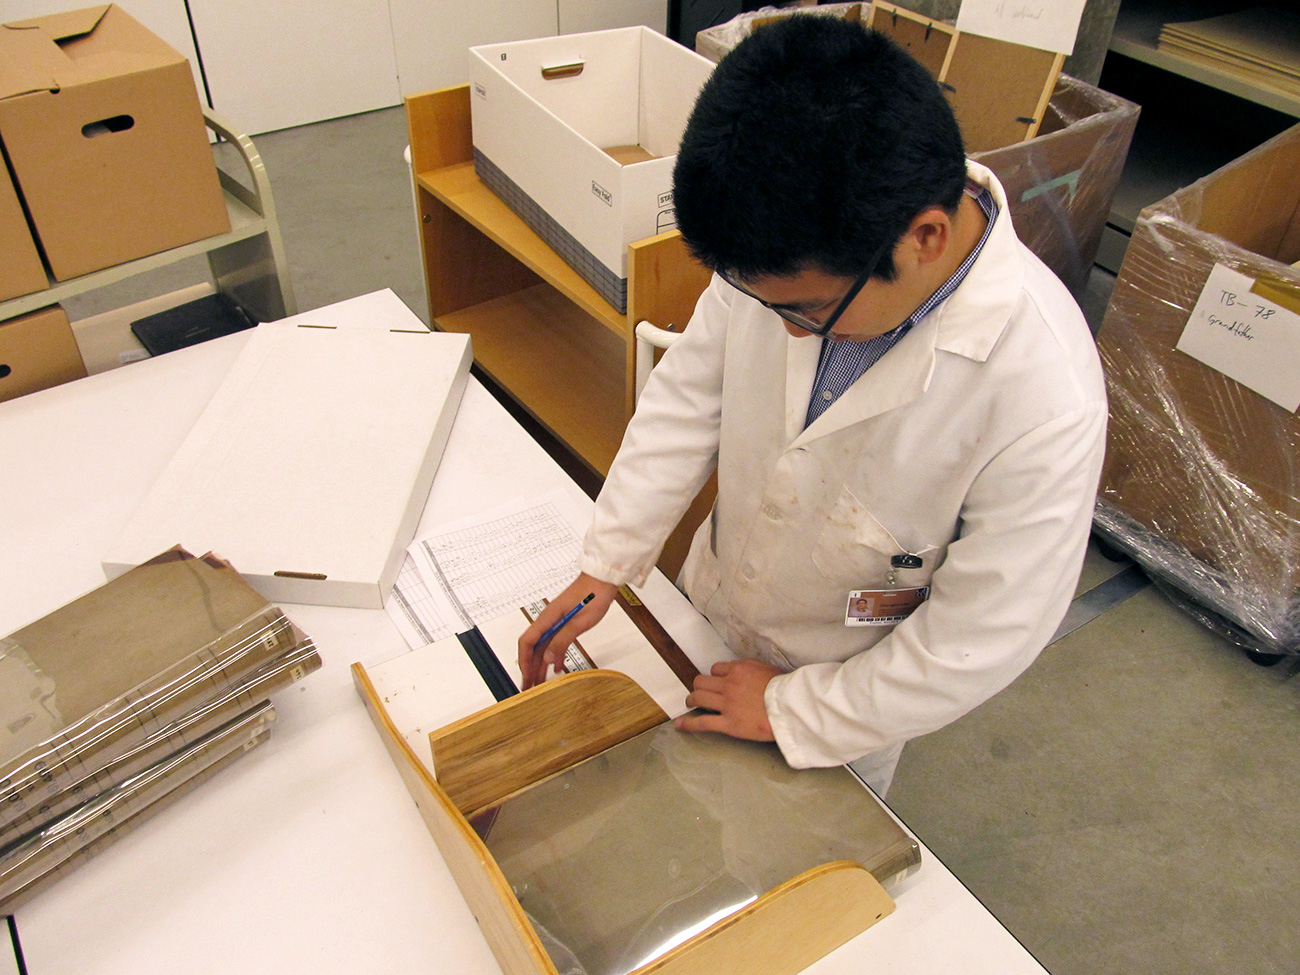 Chenglin Lee, 2015 intern from the Getty's Multicultural Undergraduate Internship Program, measures M. Knoedler & Co. financial ledgers for custom-sized phase boxes